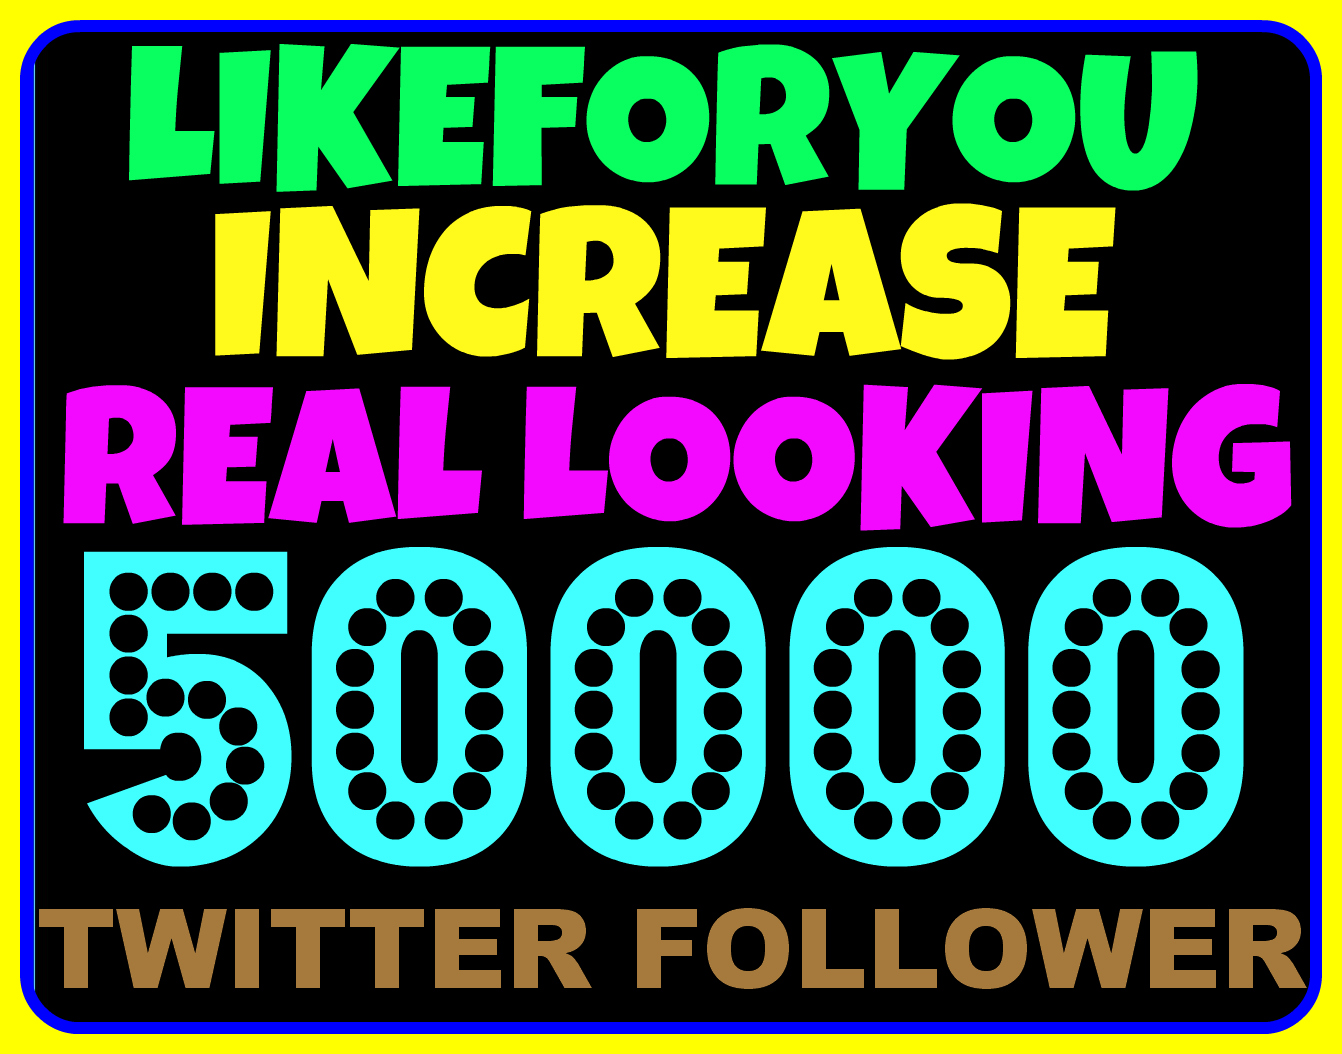 Increase 50,000 Real Looking Twitter Followers to Your Account Just Within 12hr Without Password